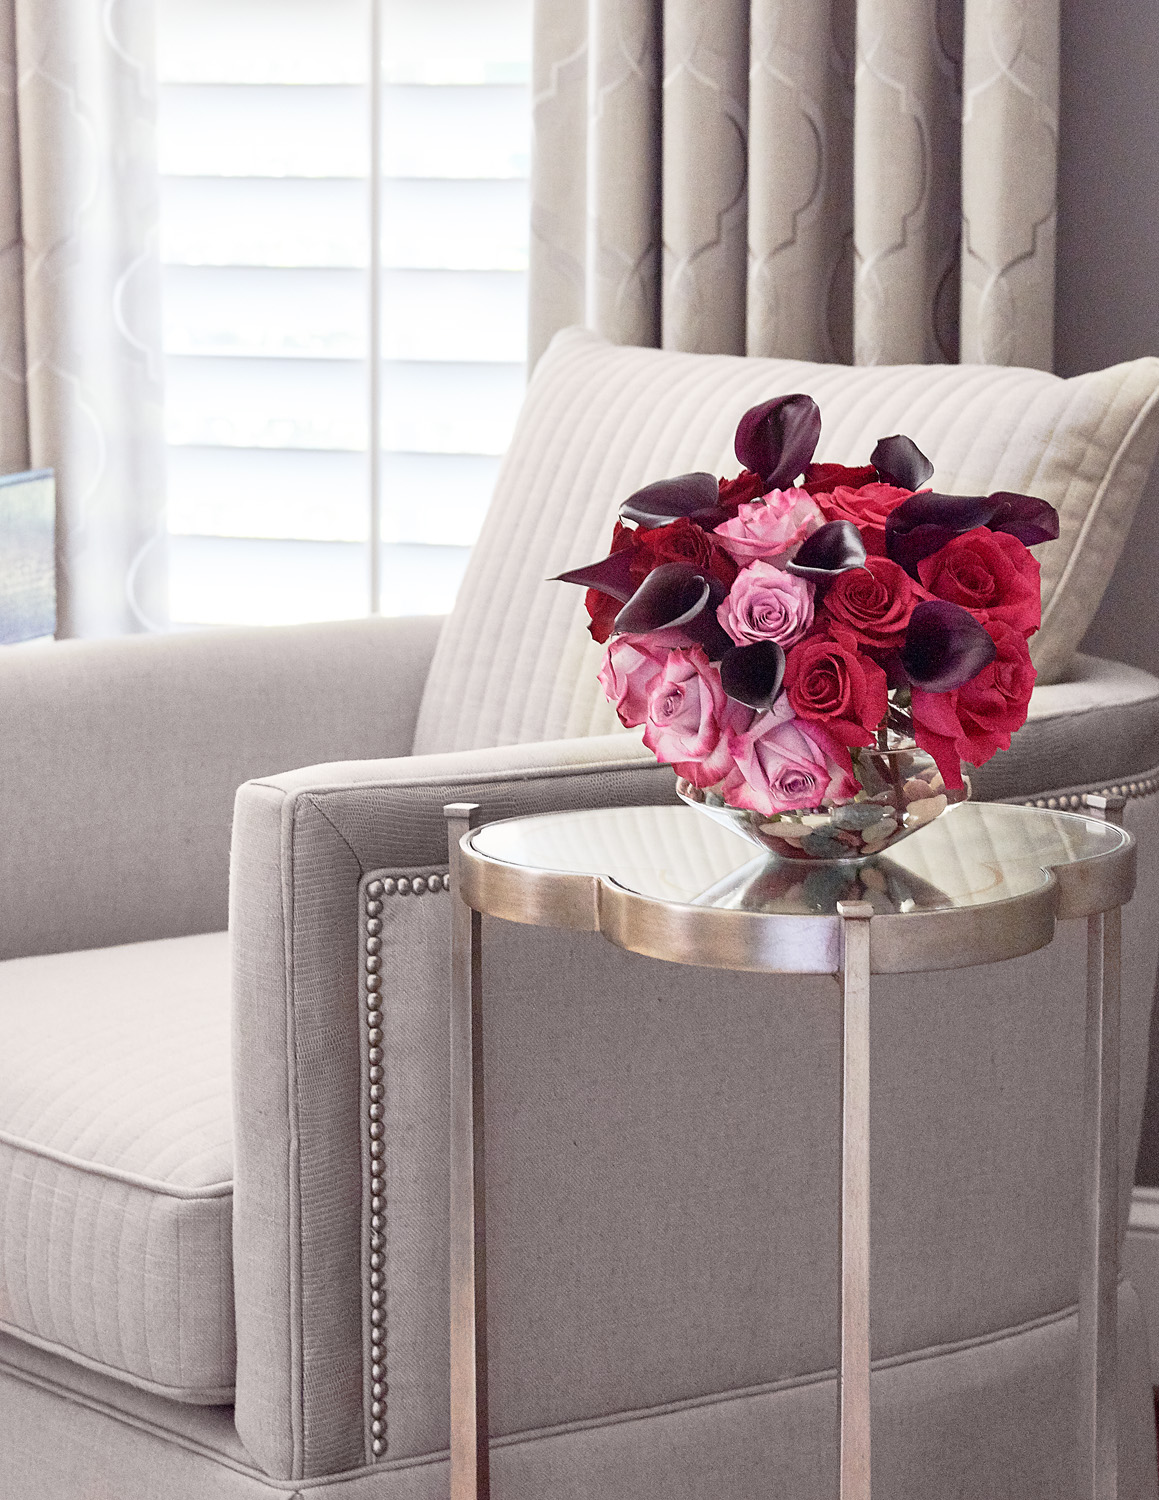 Swivel chair with mirrored top table with roses in living room